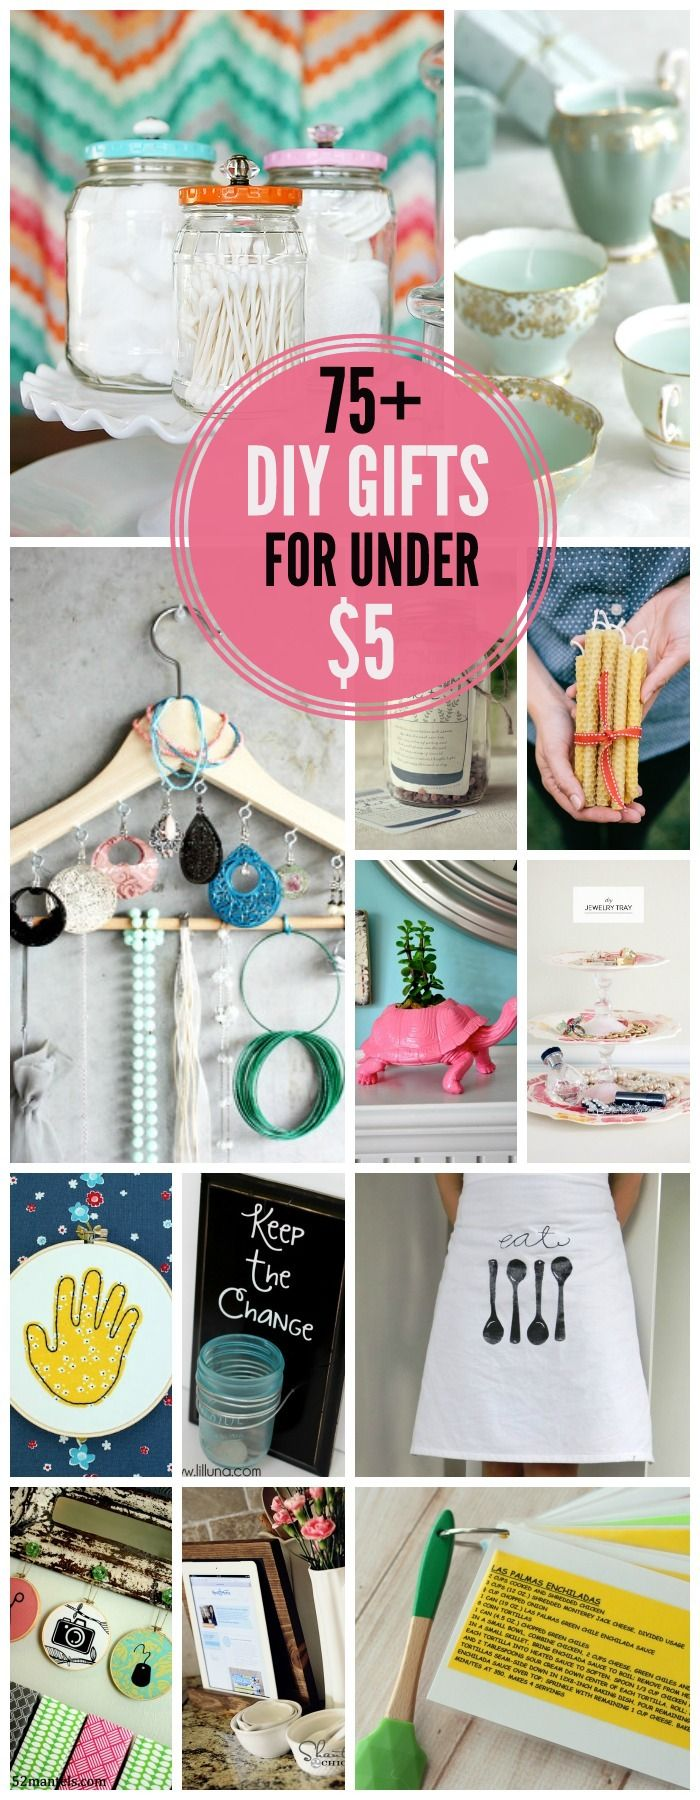 75+ DIY Gift Ideas for under $5 // Like this list. A lot of practical, easy to do projects.